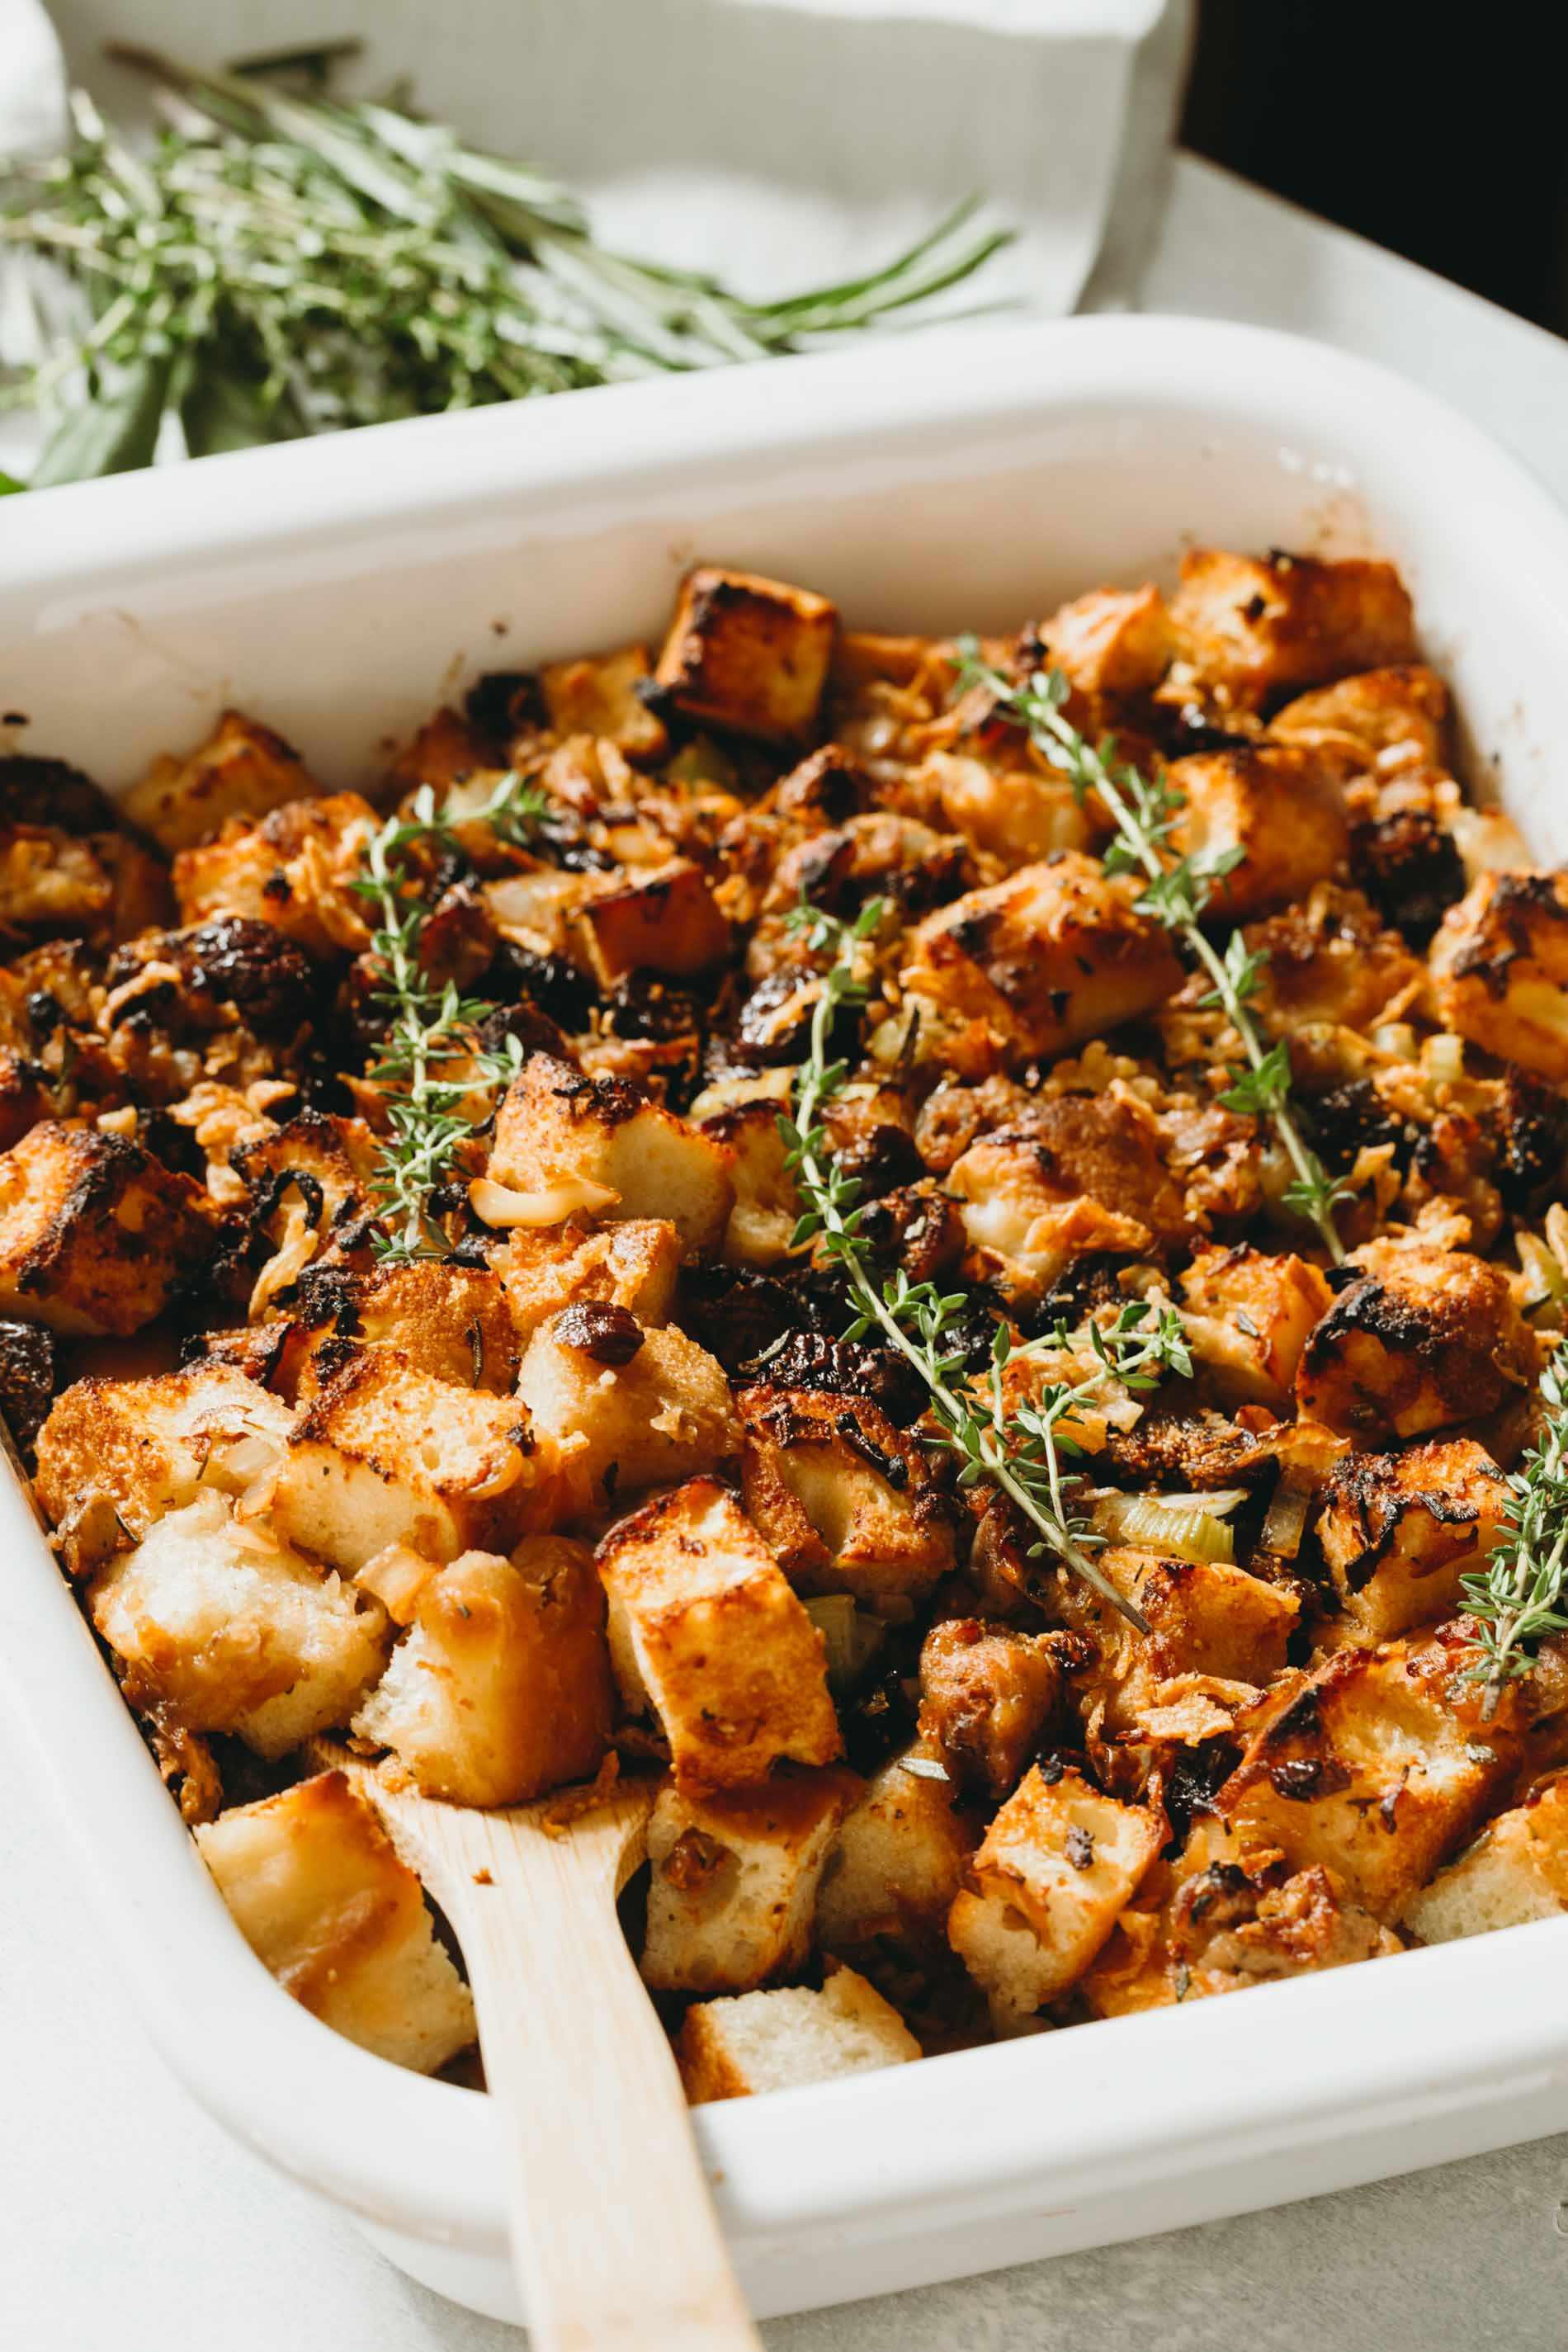 A unique take on the traditional Thanksgiving stuffing! This focaccia stuffing is filled with dried figs and chicken sausage for sweet and savory flavors!